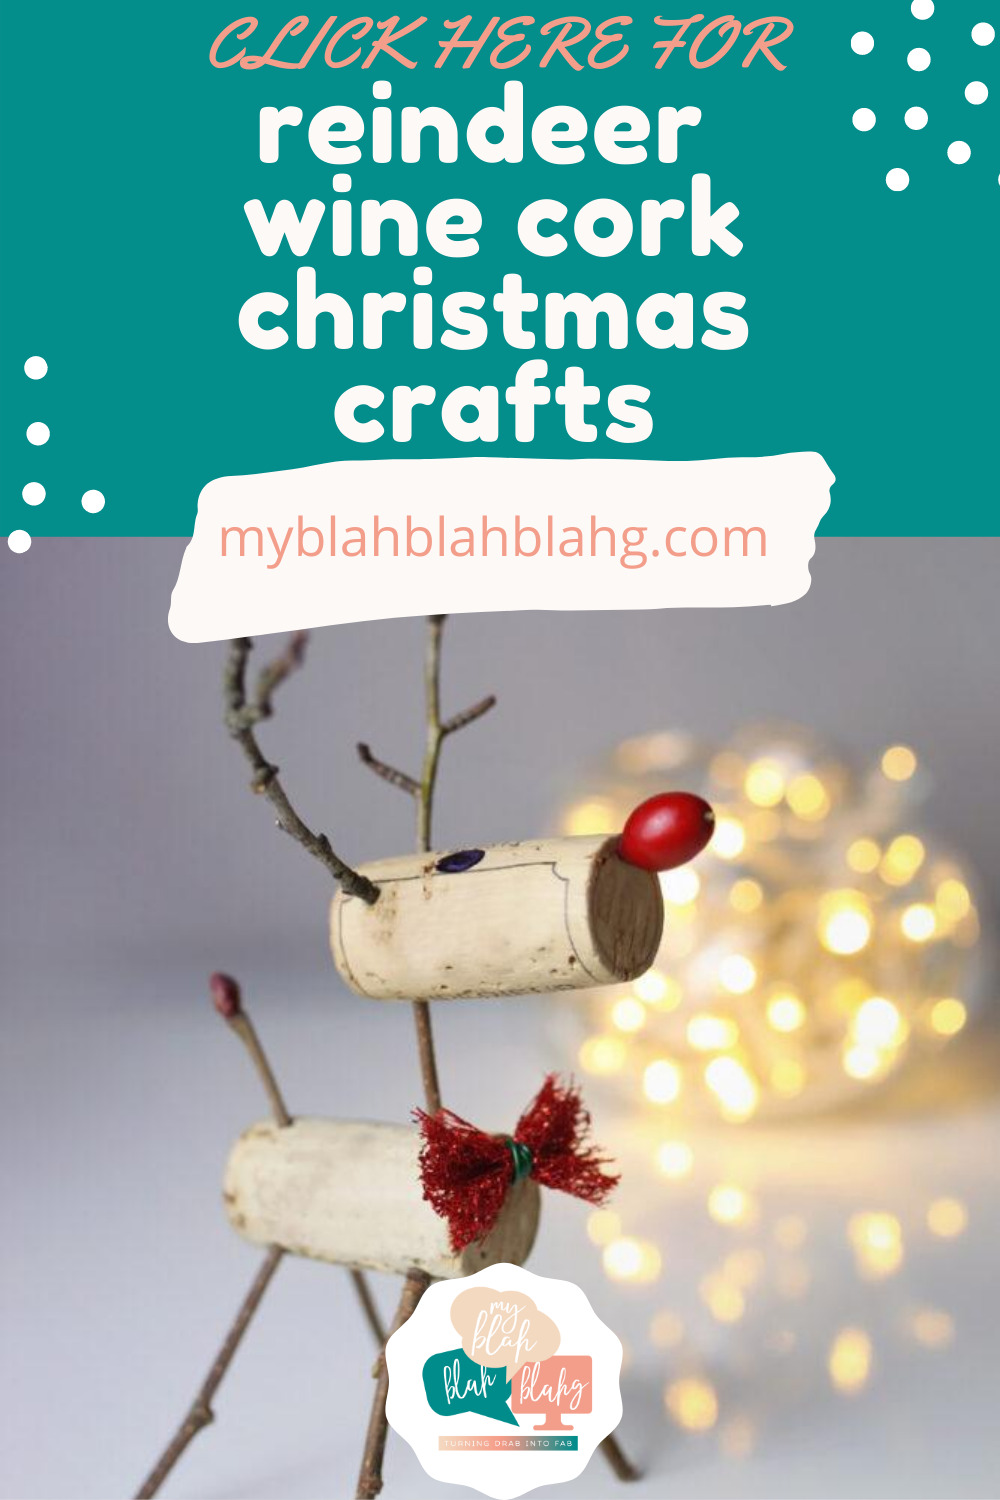 Whether you have a stockpile of wine corks or are just looking for a fun DIY, you've got to check out this post. From ornaments to magnets and wreaths, wine corks are incredibly versatile! #MyBlahBlahBlahg #WineCorkCrafts #ChristmasWineCorkCrafts #DIYChristmasCrafts #DIYWineCorkCrafts #christmascrafts